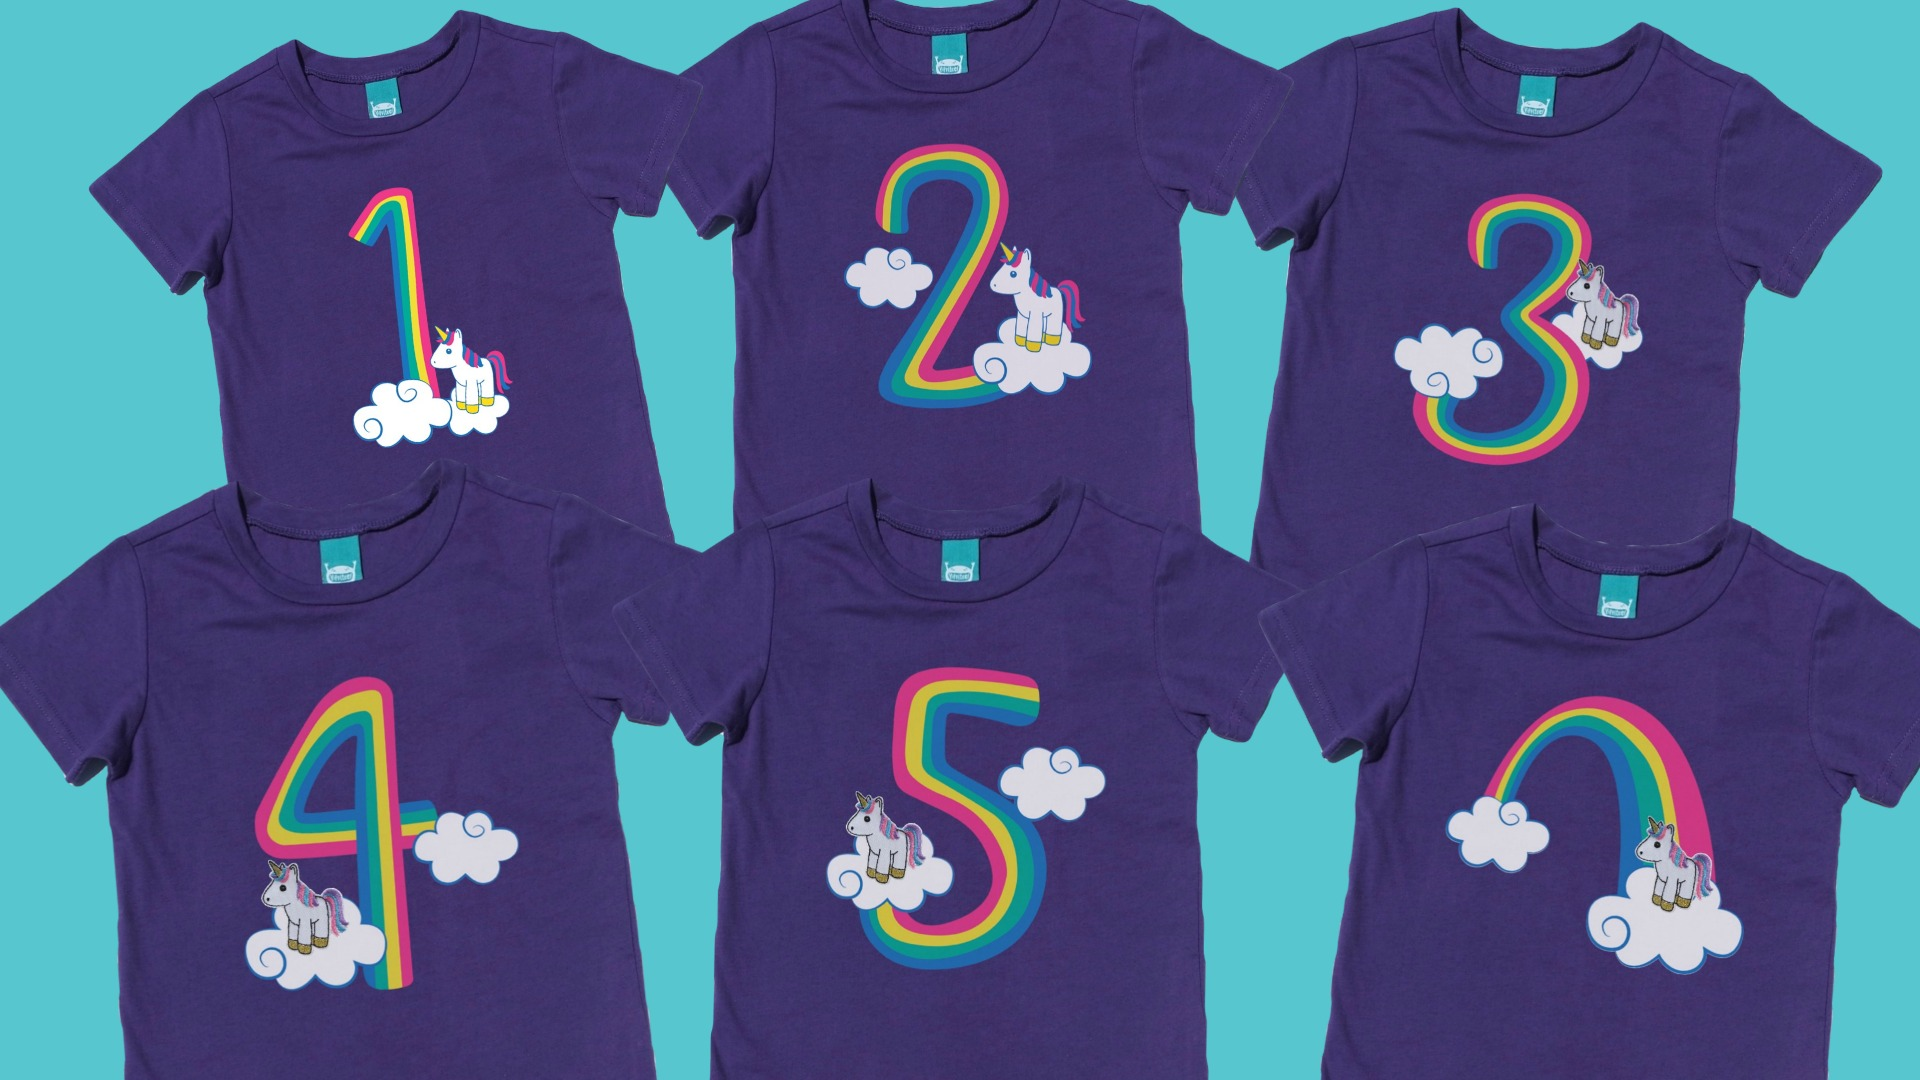 Unicorn Birthday Shirts with Snap-on Finger Puppets Coming Soon!